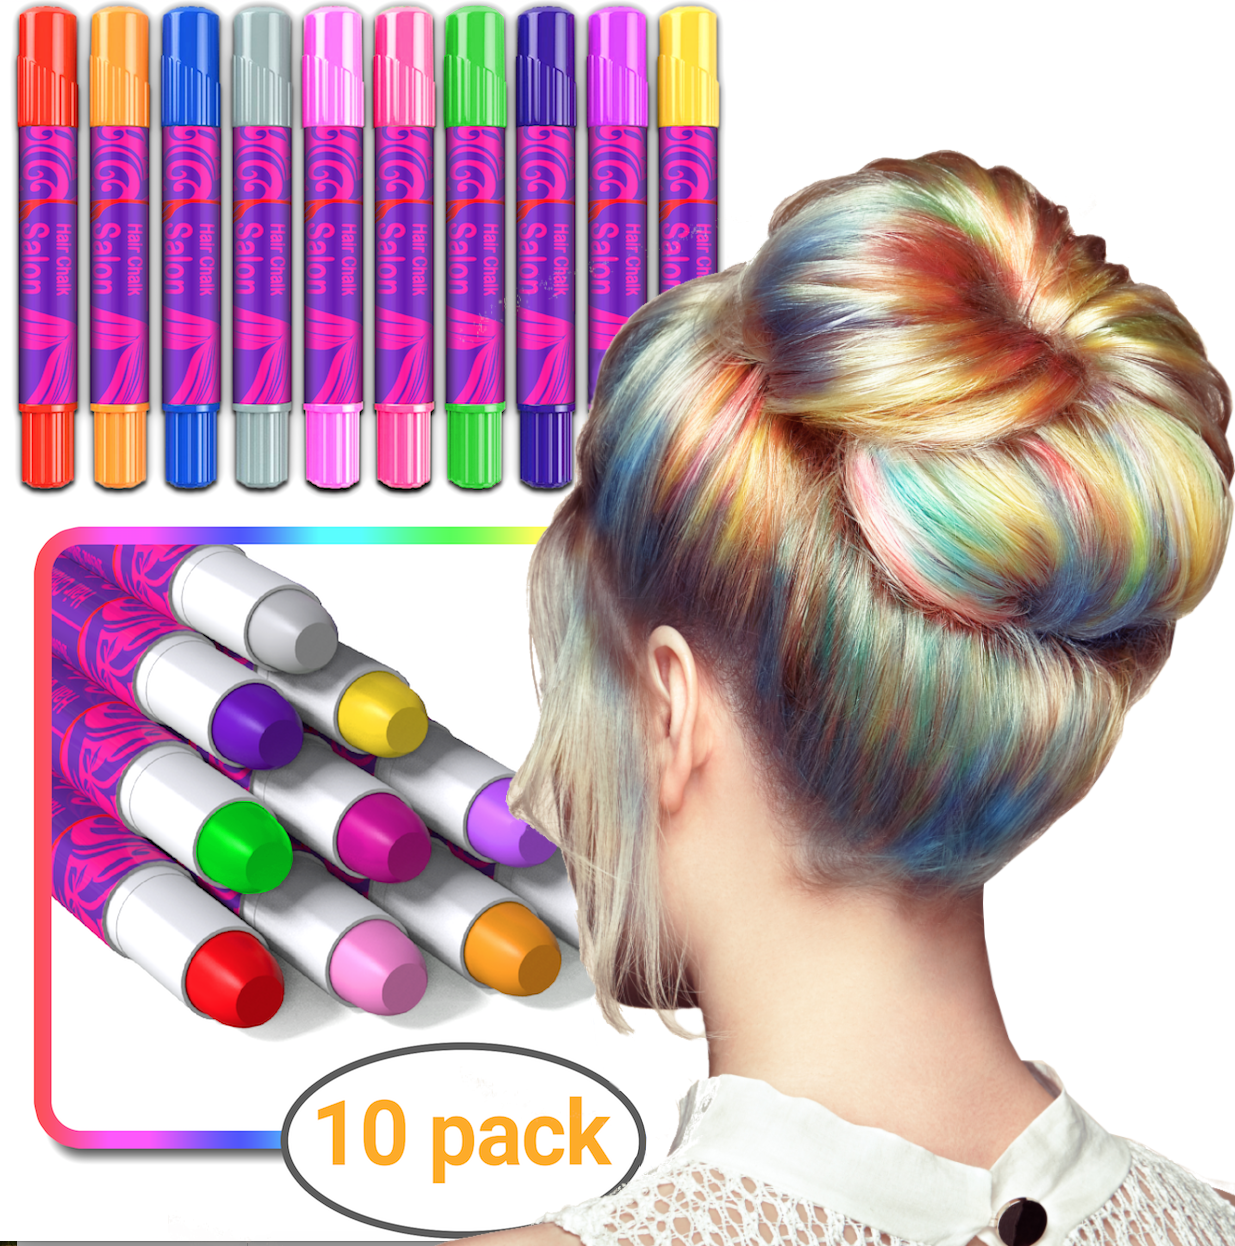 Christmas Gifts For Girls Age 9 10.Desire Deluxe Girls Gifts Hair Chalk Gift For Girls 10